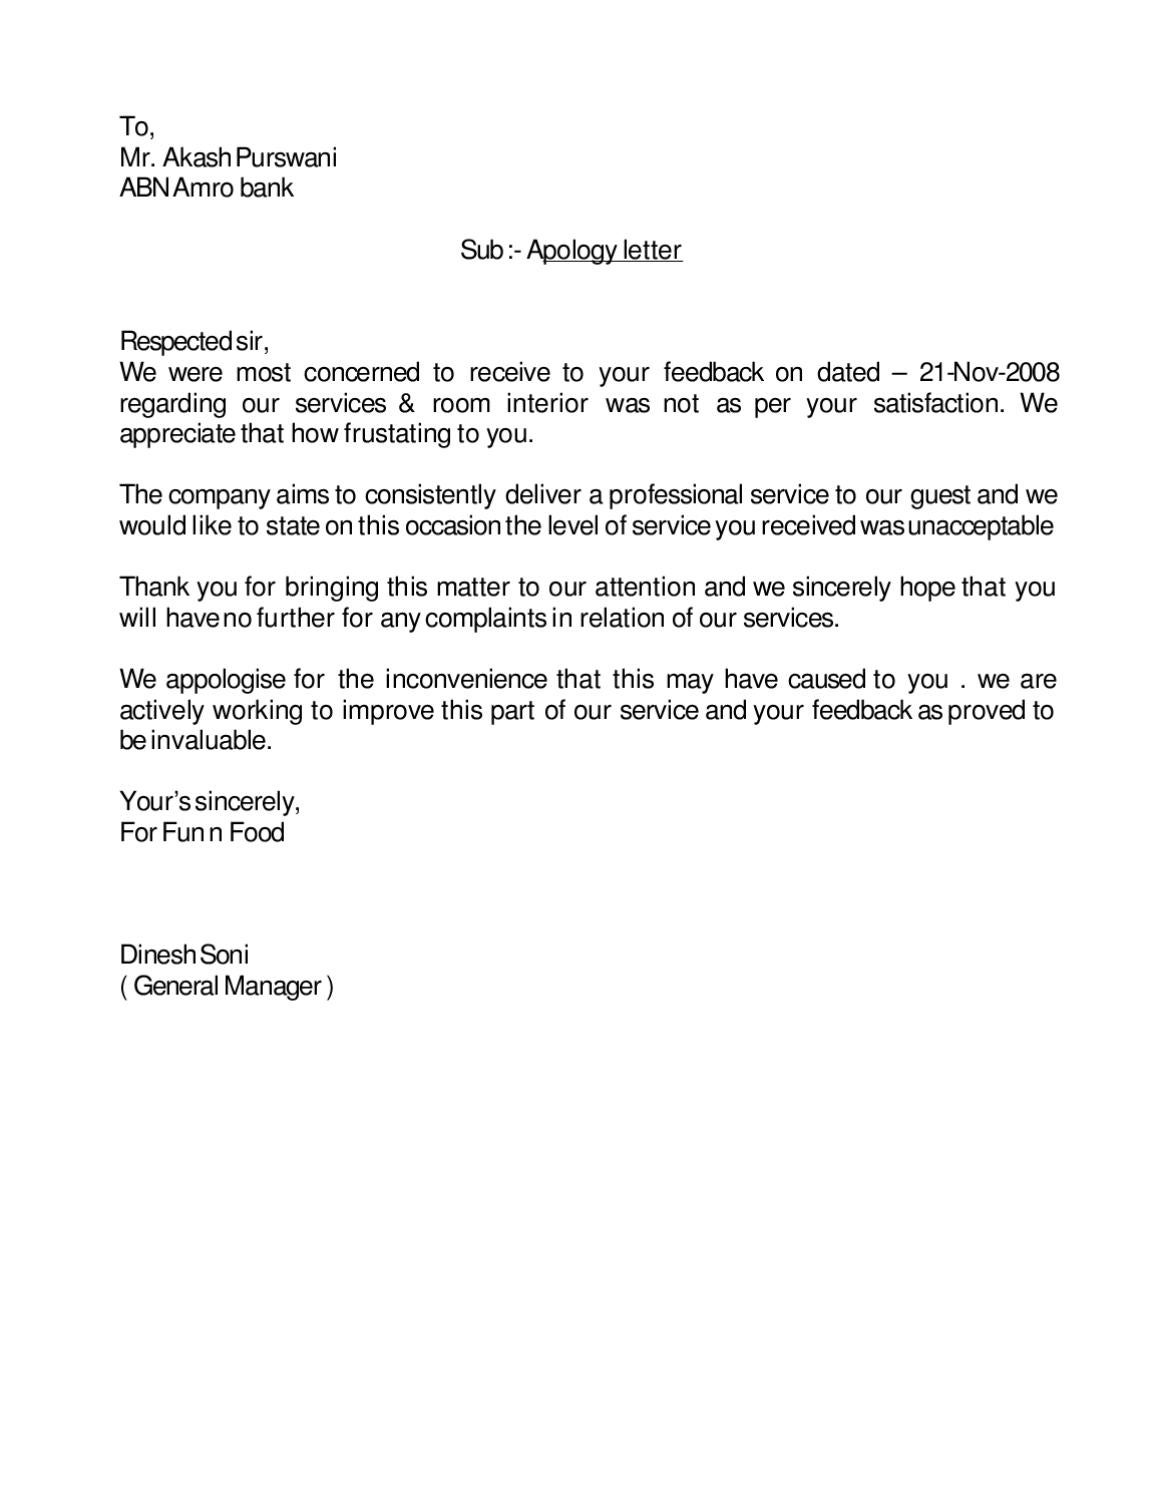 apology letter by yogendra singh